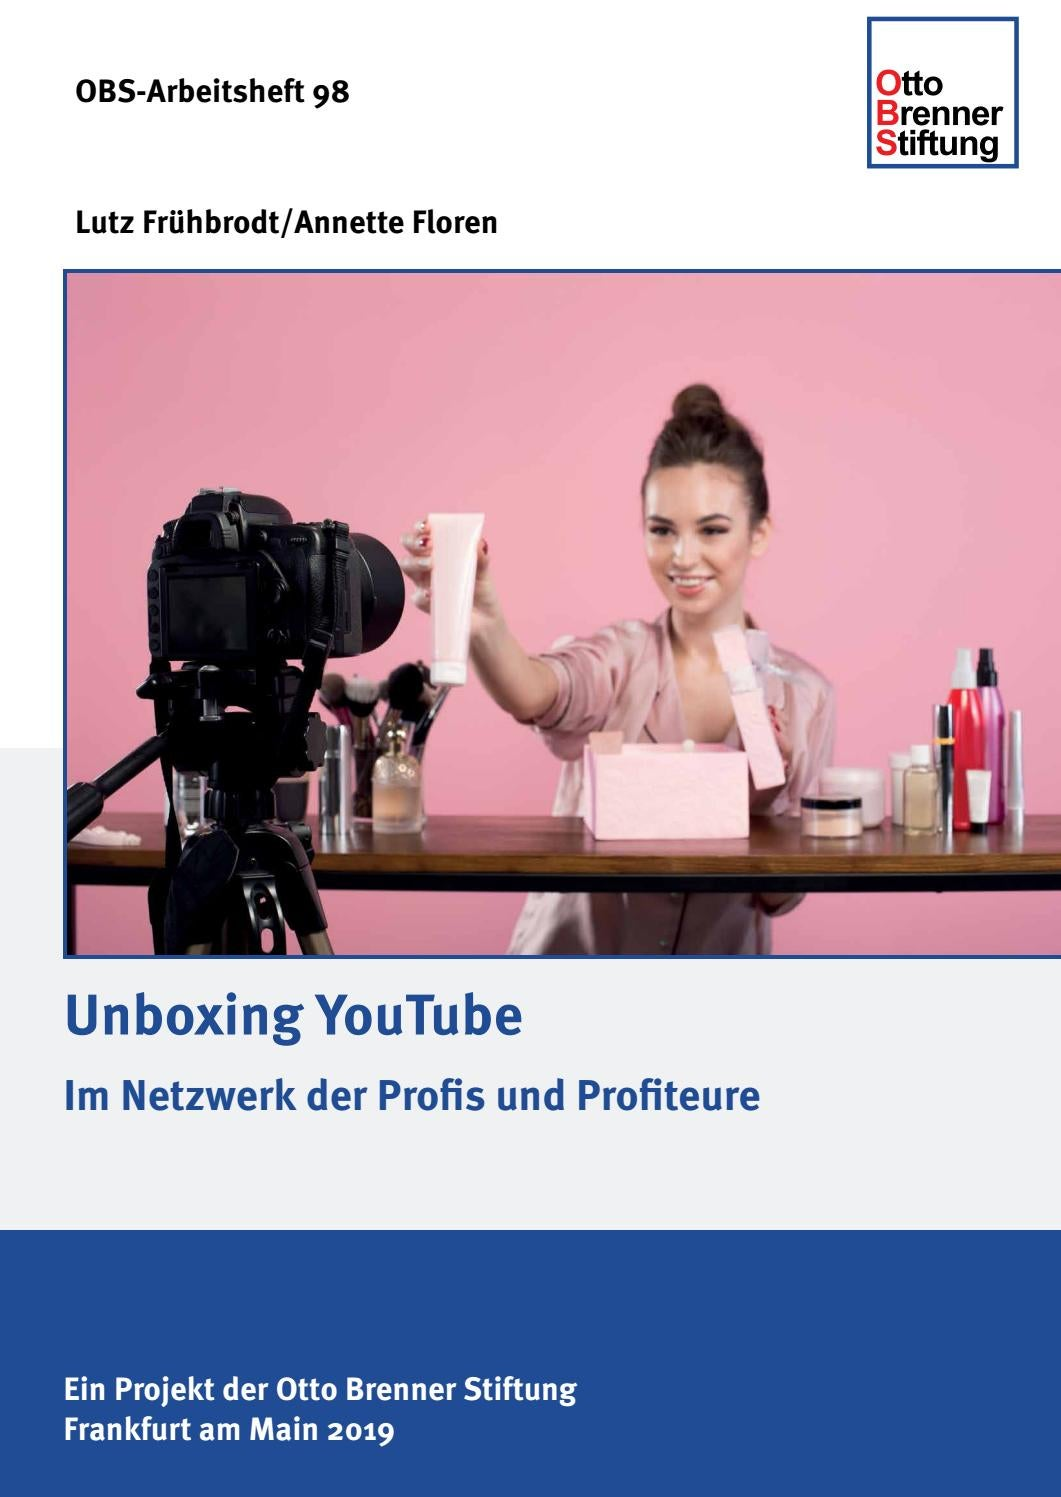 Unboxing Youtube By Otto Brenner Stiftung Issuu